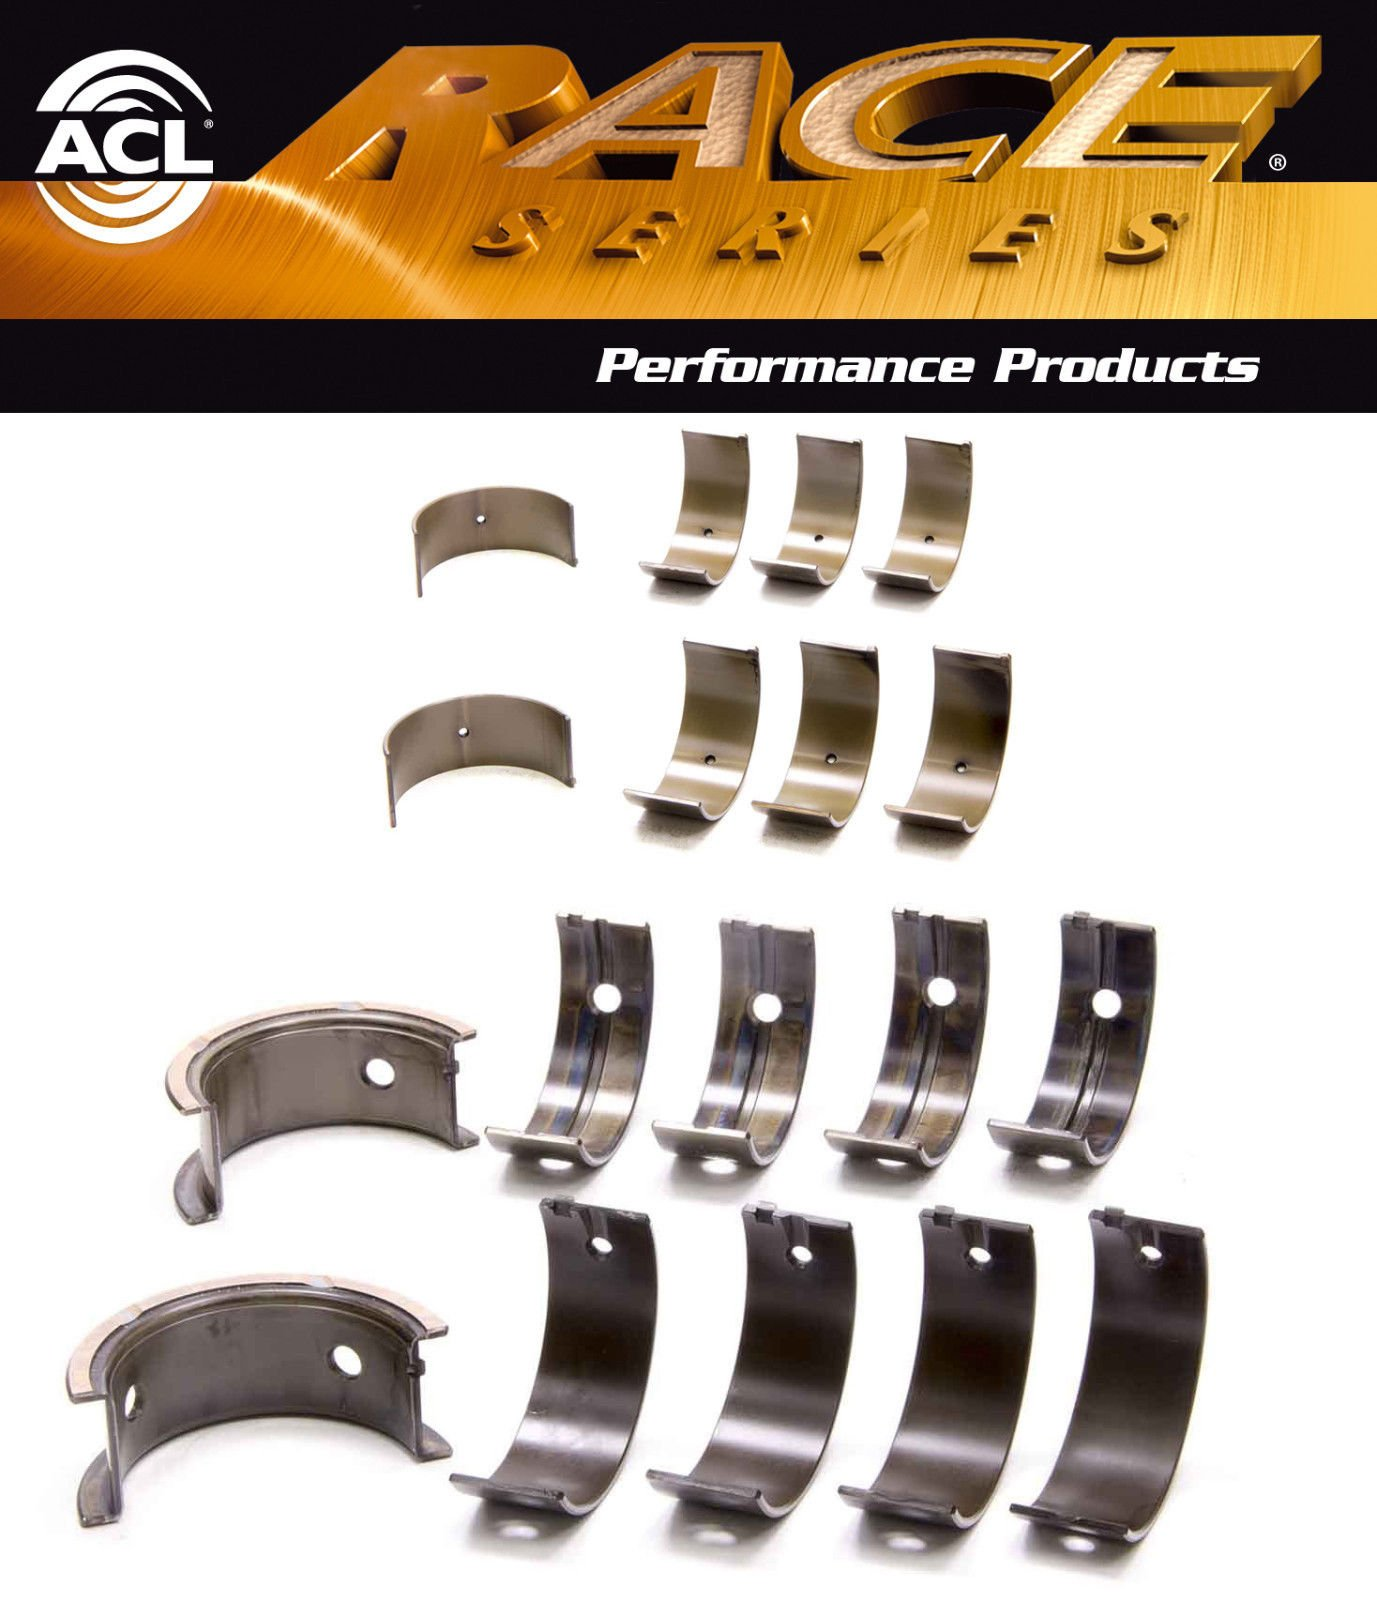 ACL Race Rod+Main Bearings for Mitsubishi 4G63 4G63T 2.0 2.4 6-bolt Up-92 STD SIZE (4G63 4G63T 2.0 2.4l)